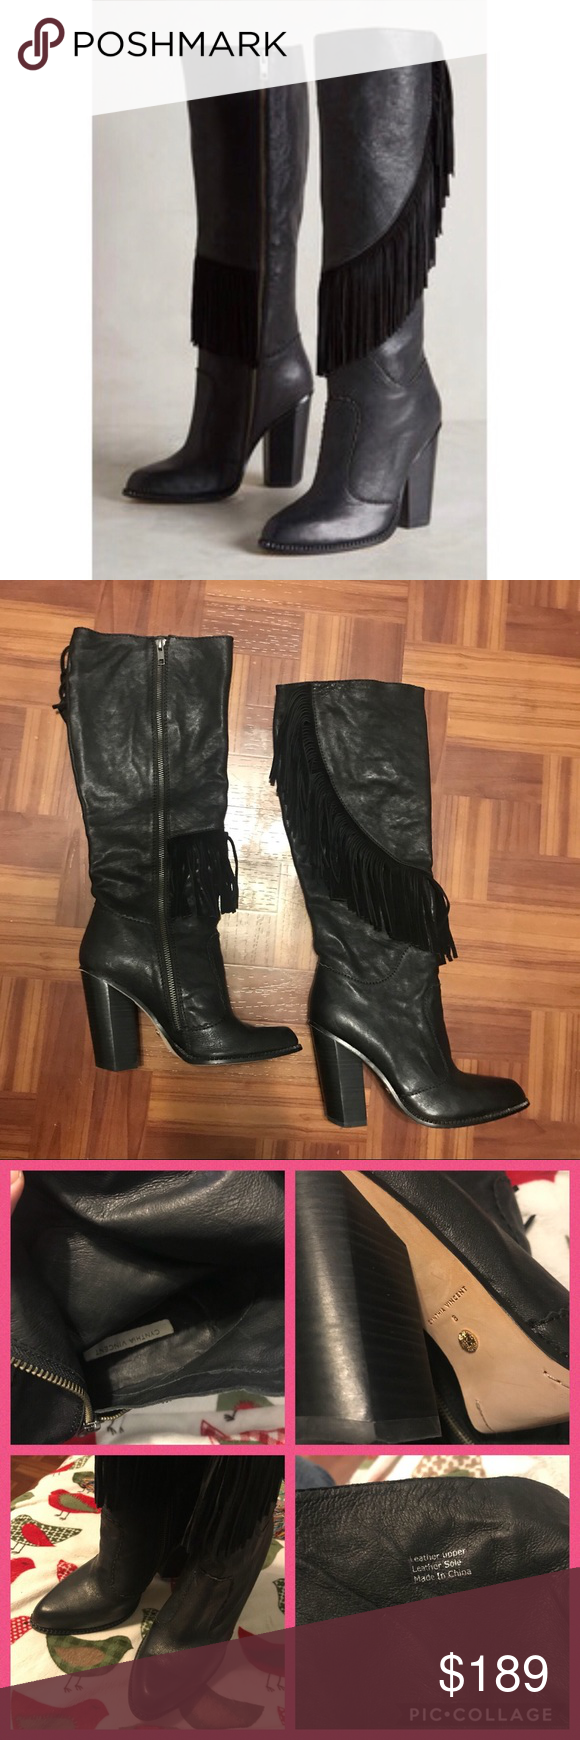 """a9afd7849c6 Cynthia vincent fringe boots Like new Real leather Worn just once Perfect  condition Black boots 4"""" high Cynthia Vincent Shoes Winter   Rain Boots"""